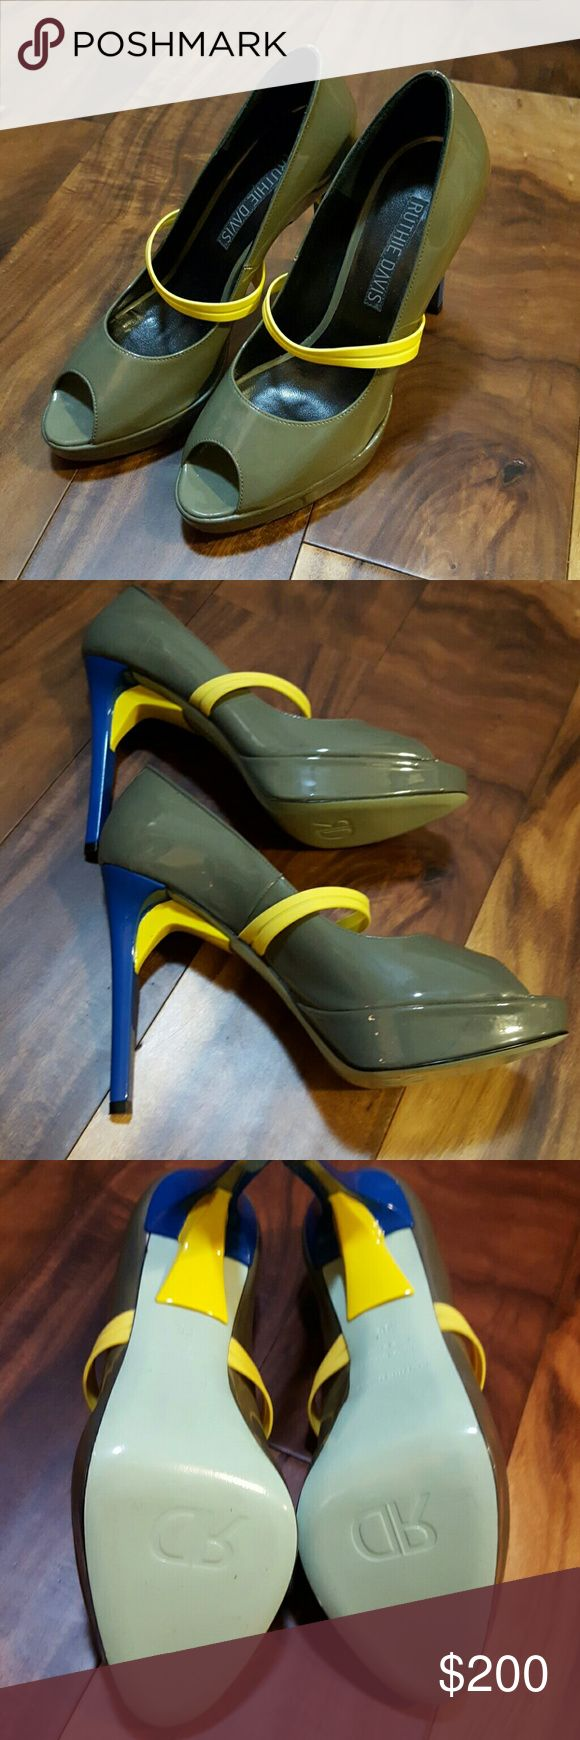 Ruthie Davis Heels SUPER CUTE! ALMOST LIKE NEW!  See photos and ask any questions you would like.  They are an olive green with the yellow and blue accents. Size 36. Ruthie Davis Shoes Heels